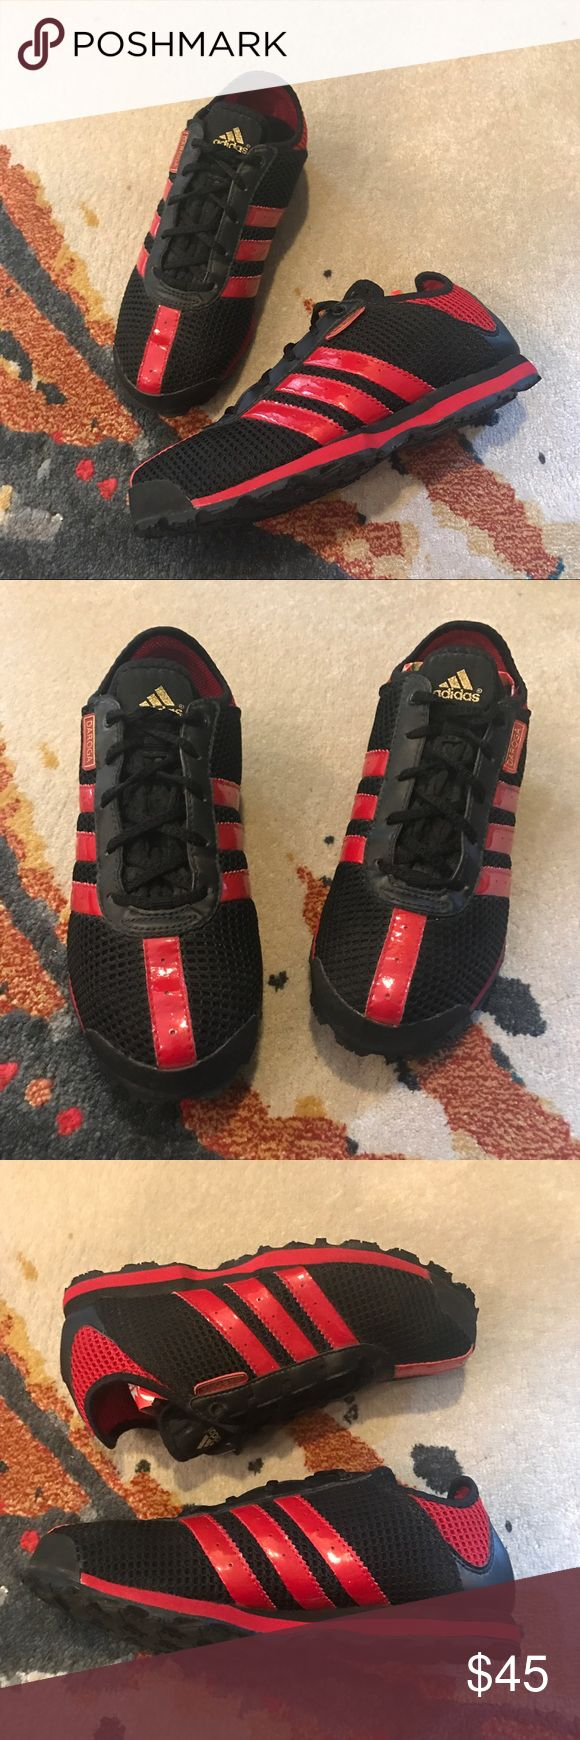 Adidas Adventure Sneakers Black and Red Adidas Daroga Adventure sneakers. Lightweight light adidas athletic shoes in great condition. Great for hiking. adidas Shoes Athletic Shoes